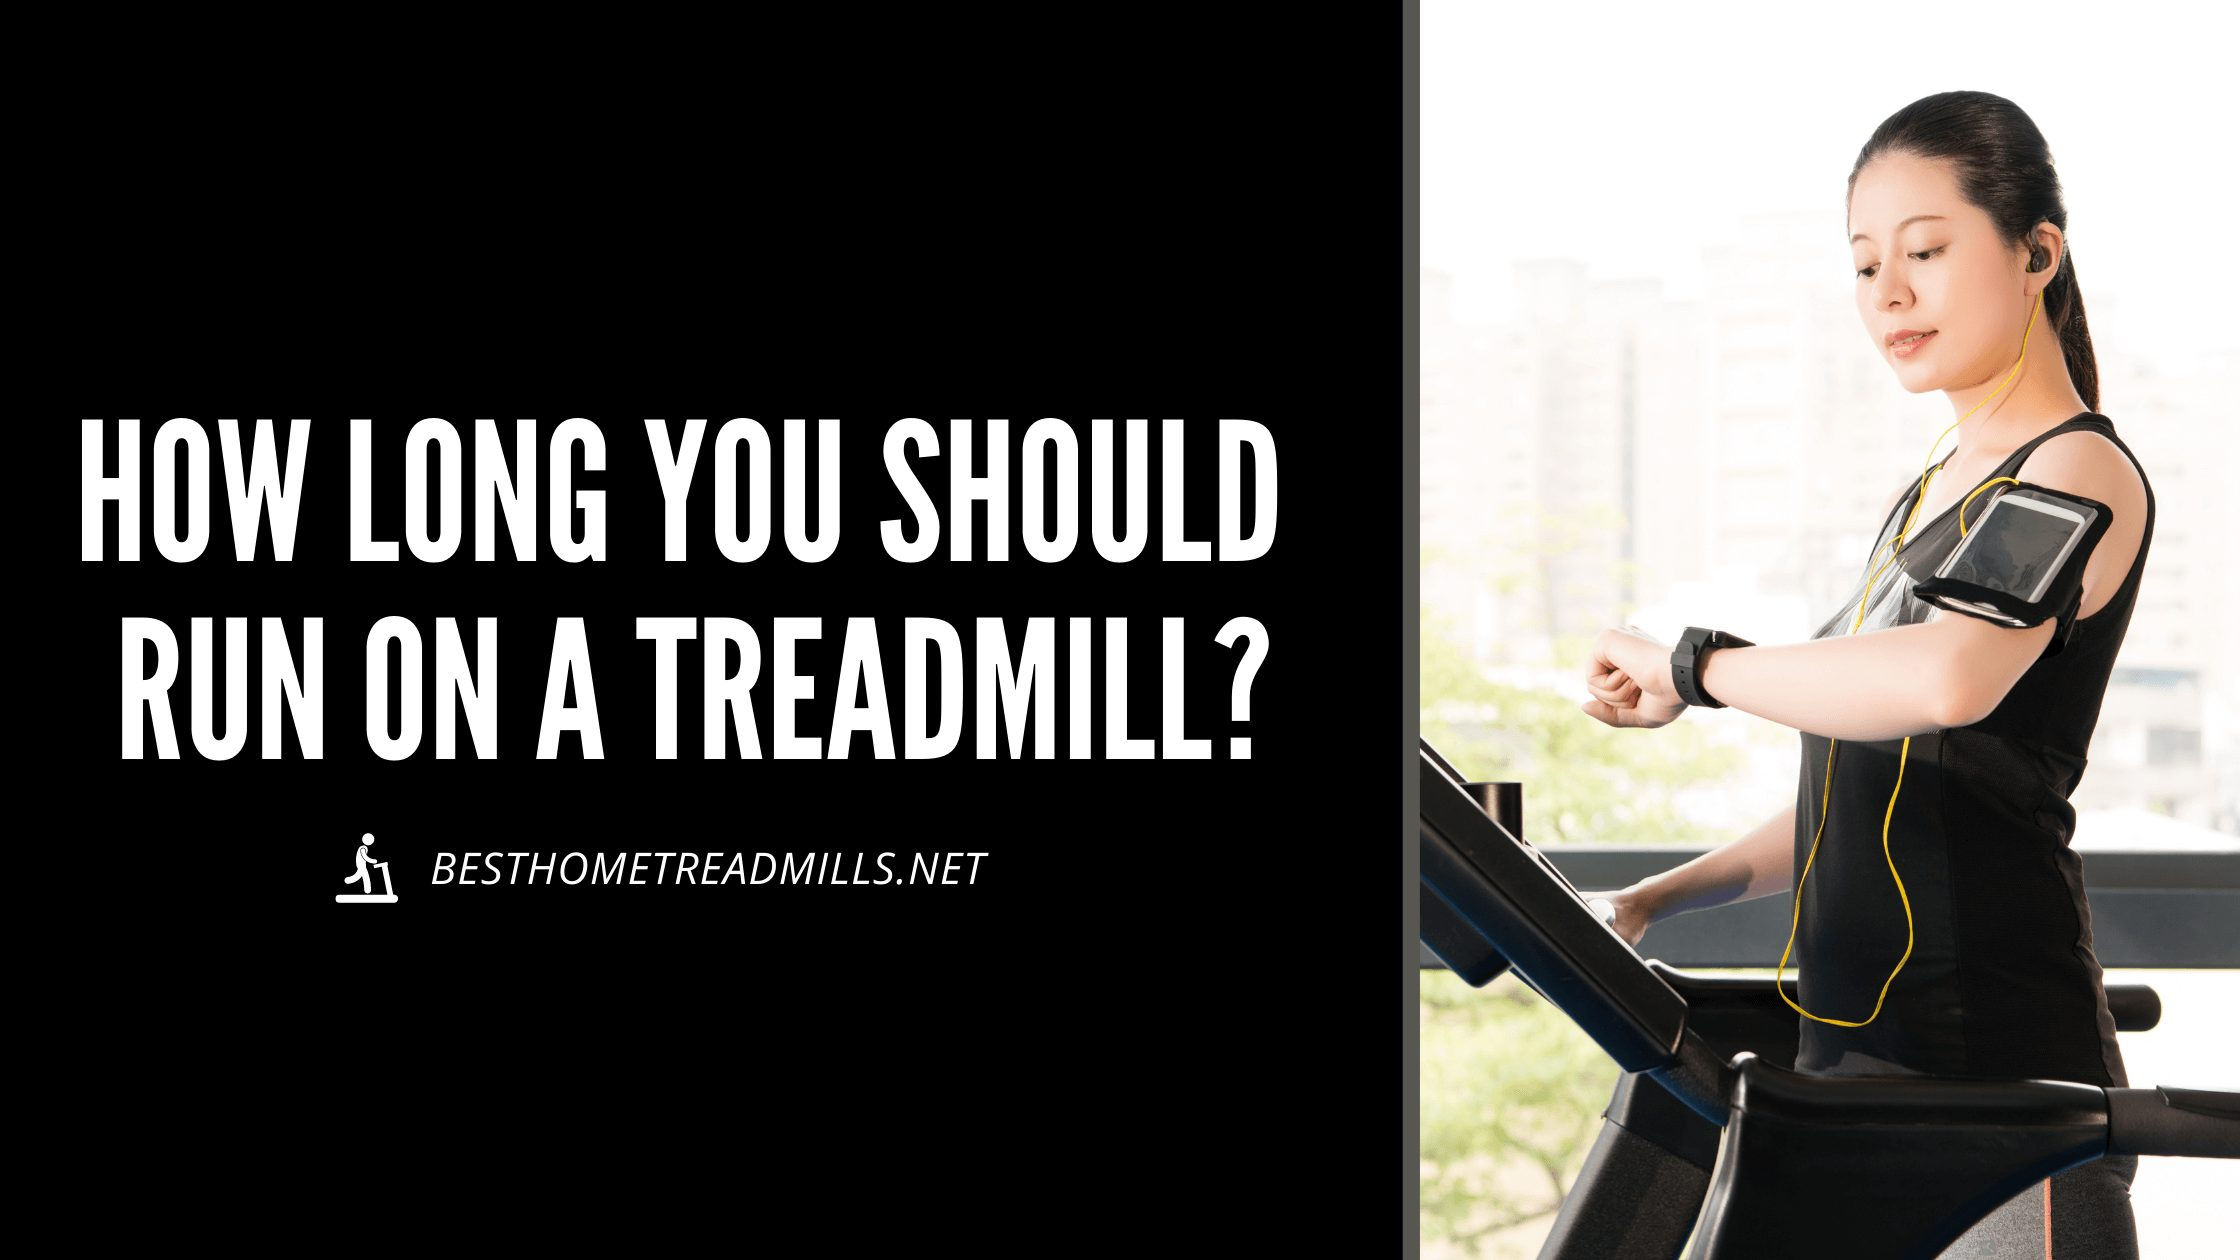 How long should you run on a treadmill - Featured Image